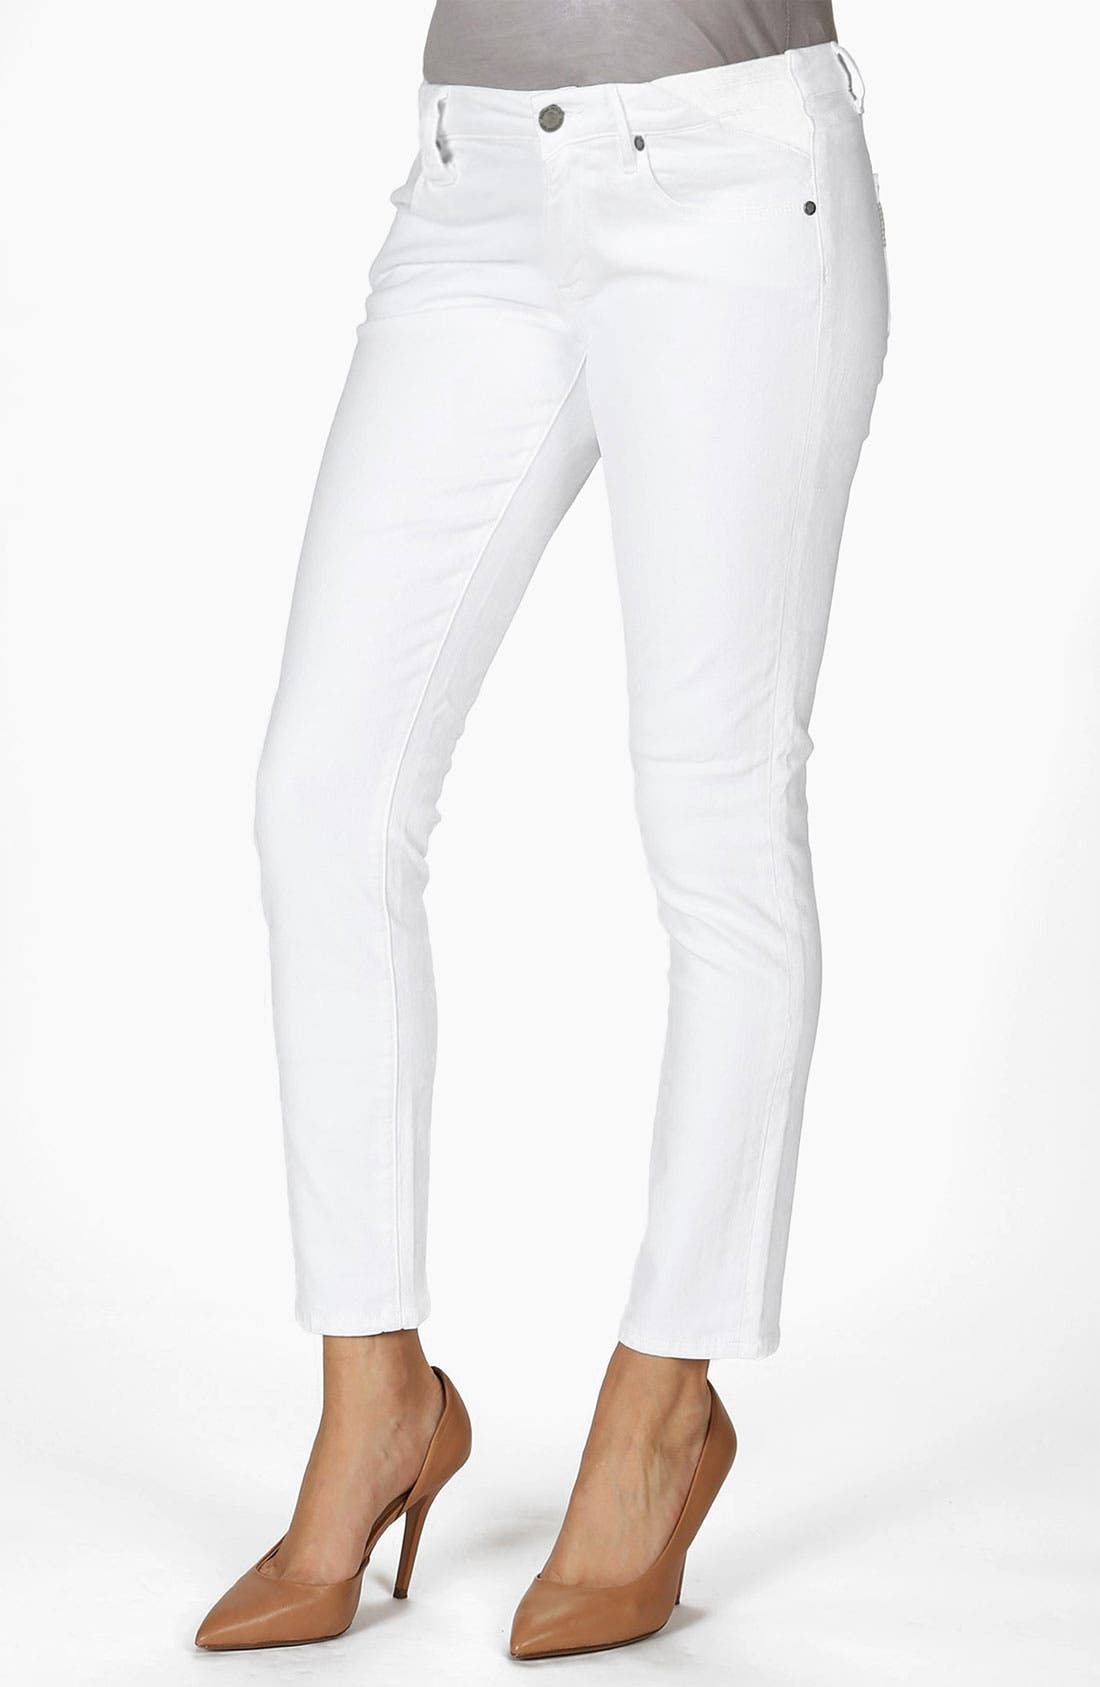 Main Image - Paige Denim 'Skyline' Maternity Ankle Skinny Stretch Jeans (Optic White)